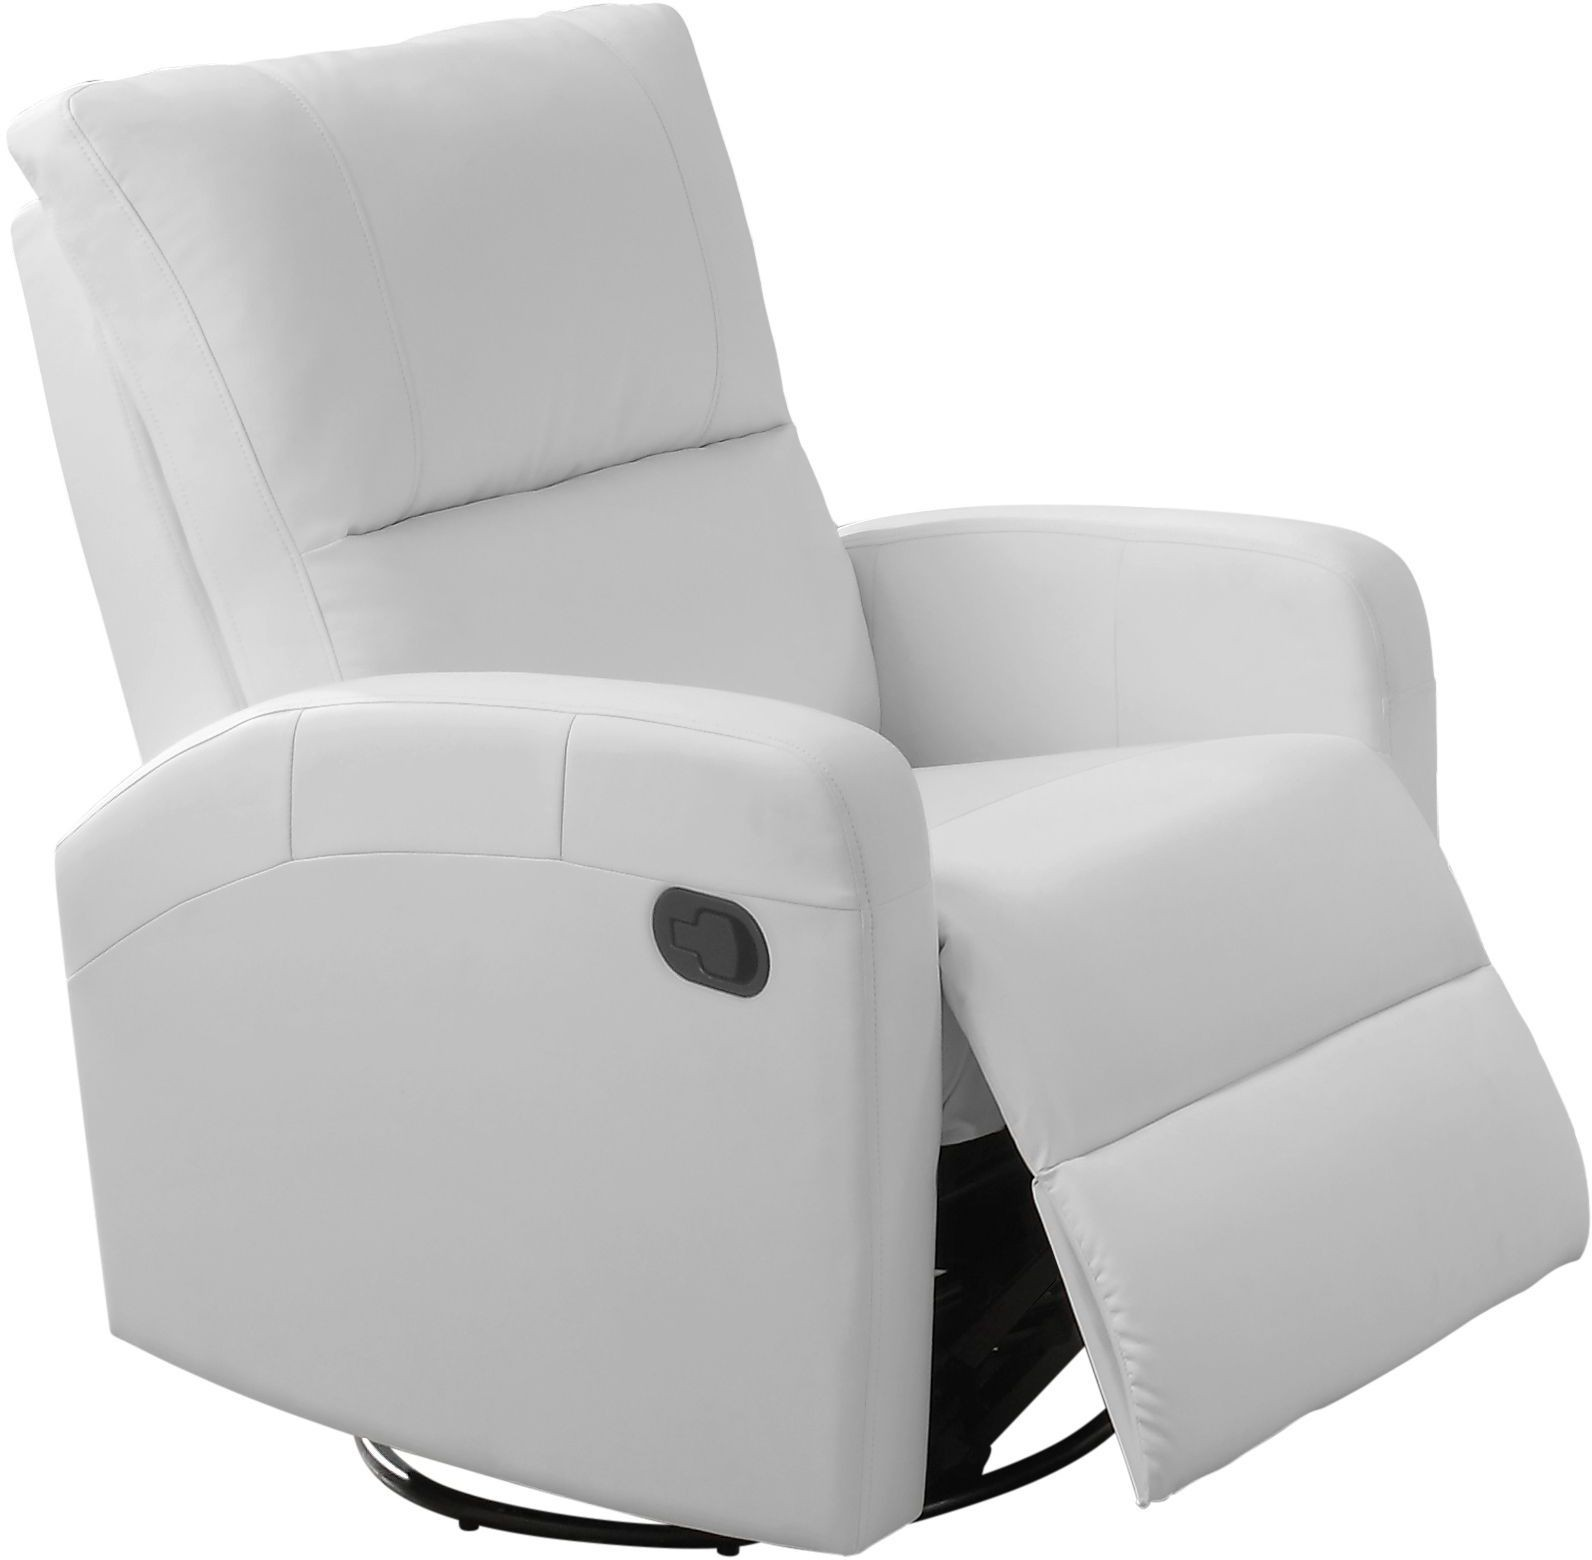 White Leather Swivel Chair 8084wh White Bonded Leather Swivel Glider Recliner 8084wh